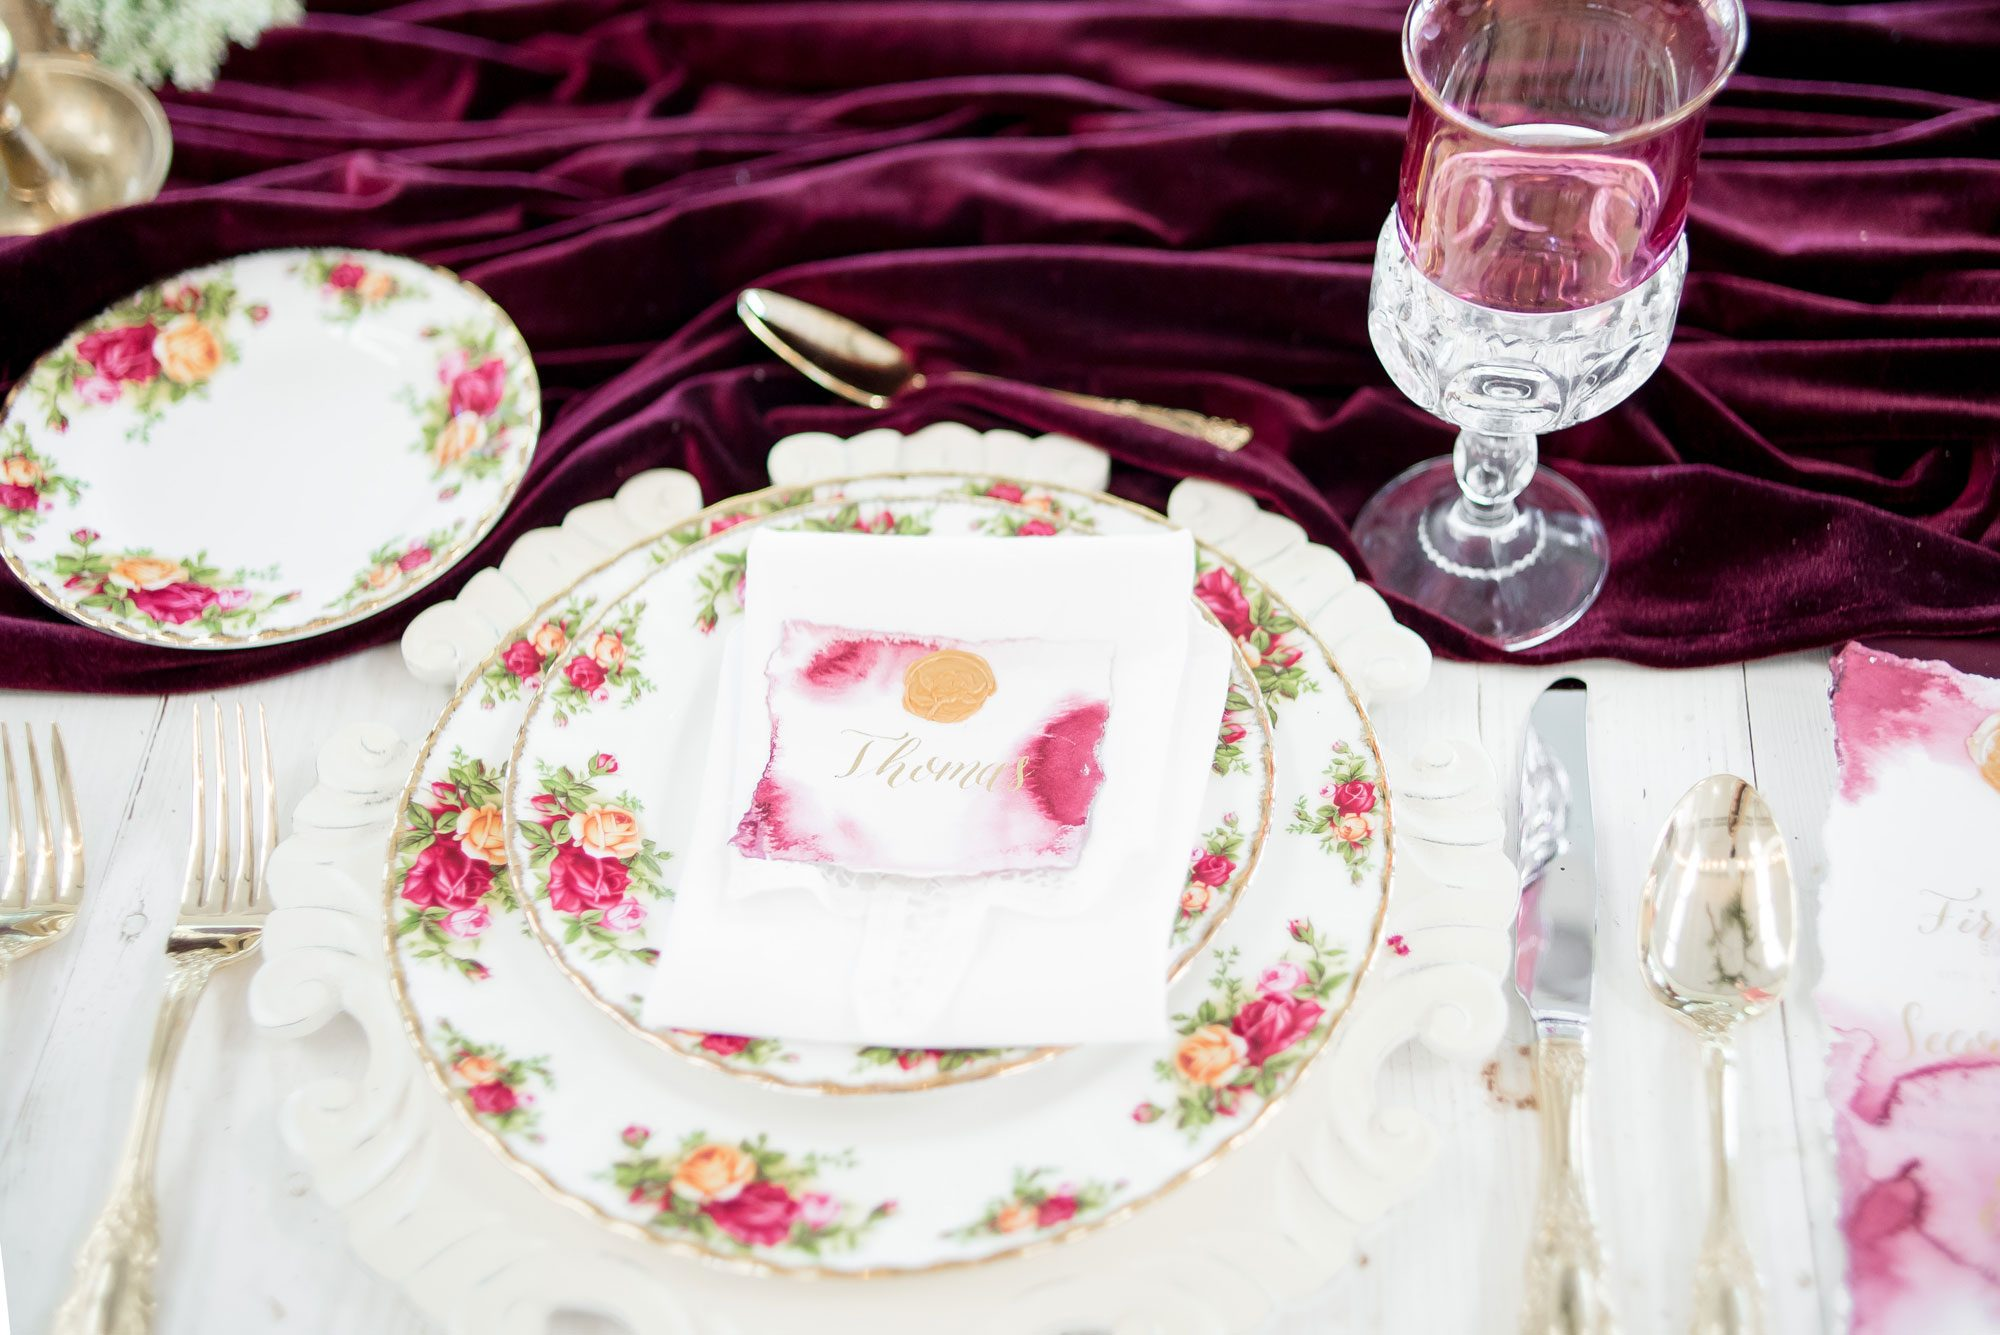 Old rose china tablescape